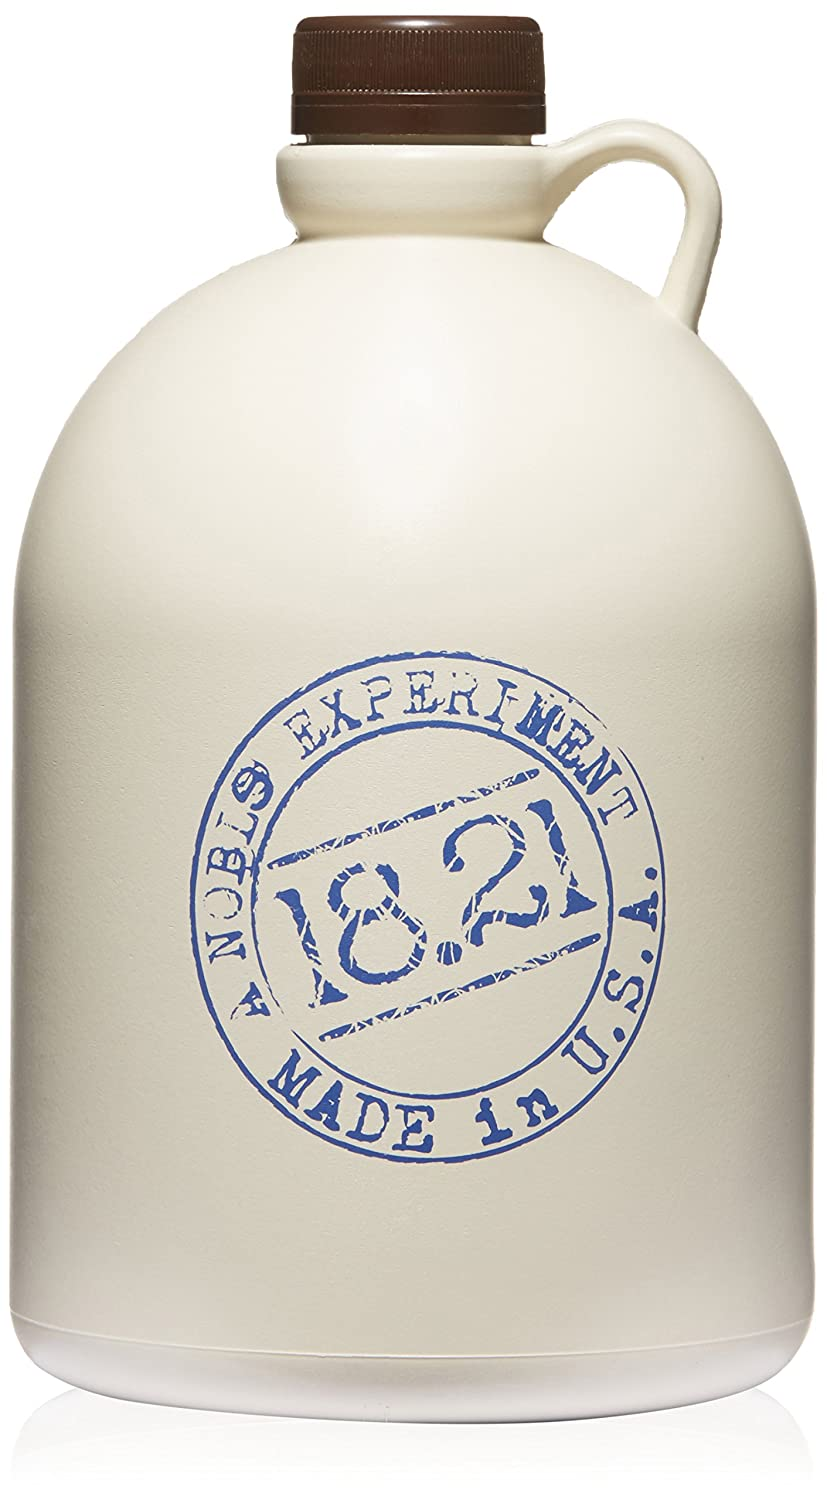 18.21 Man Made 3-in-1 Body Wash, Shampoo and Conditioner for Men, 18 Fl Oz